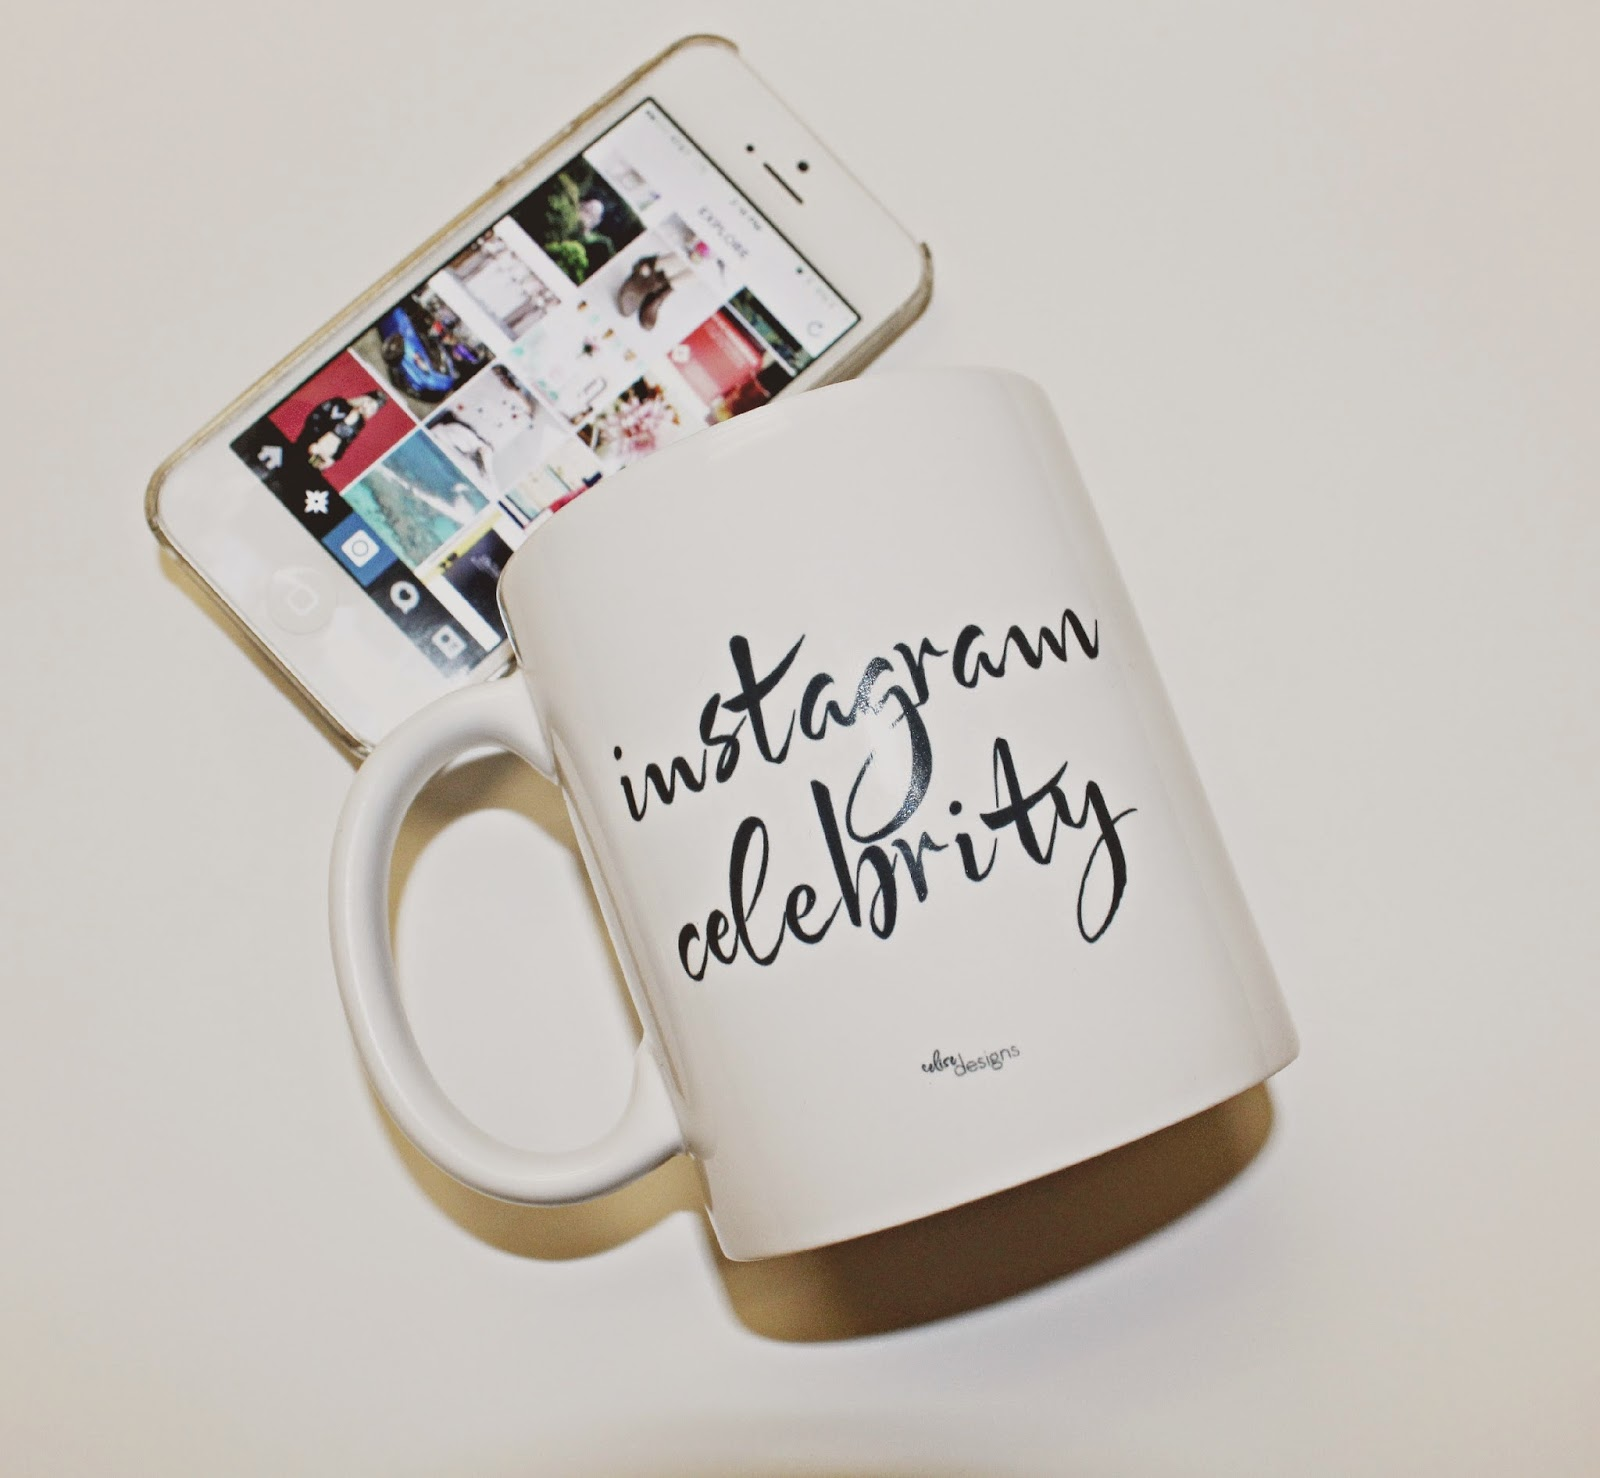 http://www.celisedesigns.com/product/instagram-celebrity-mug